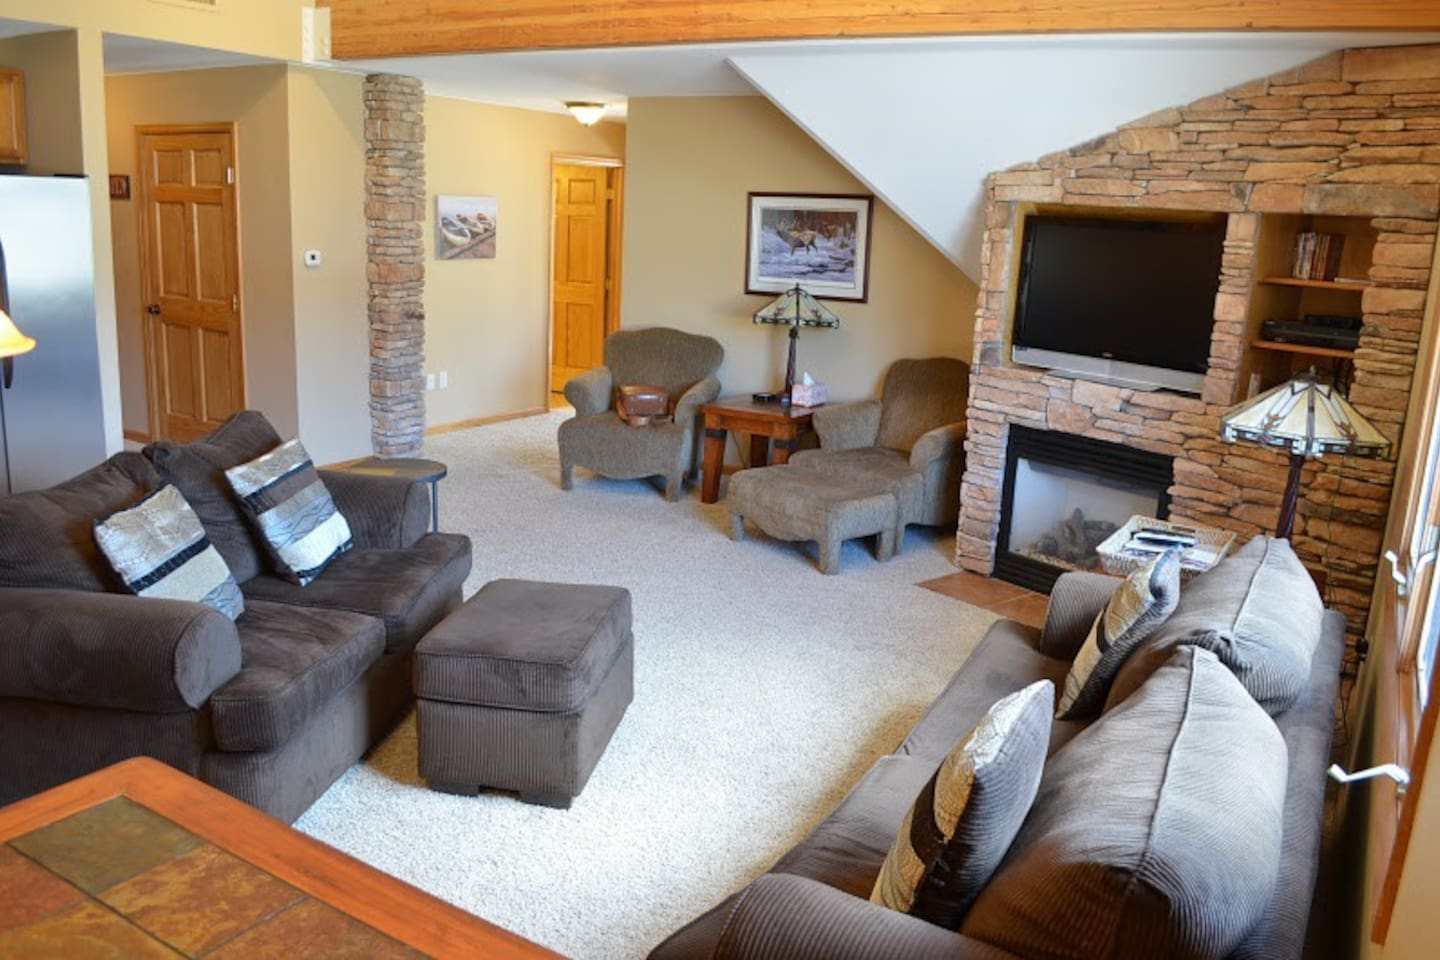 Living room is spacious and the rock fireplace provides a nice touch of warmth.